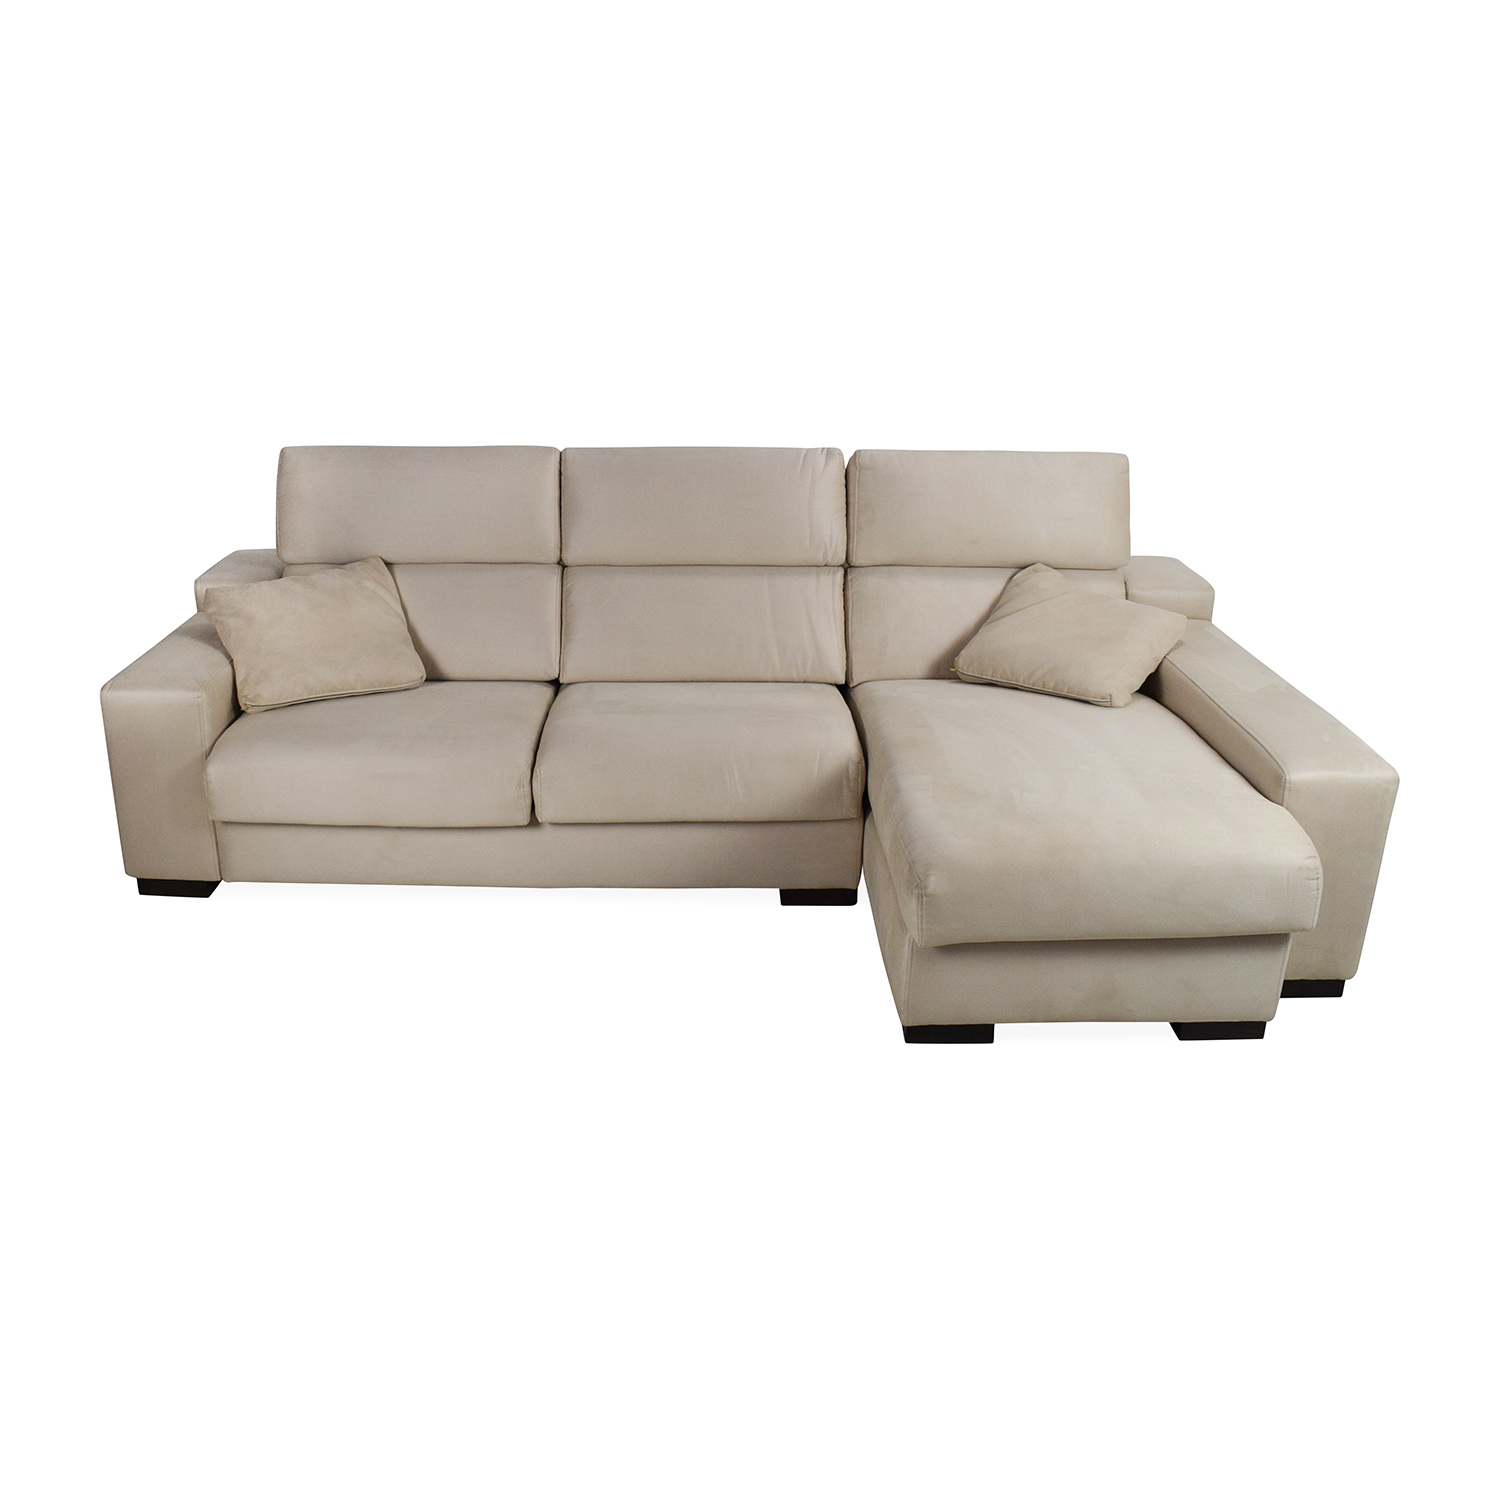 buy Fama Fama Lotus Sofa With Chaise online